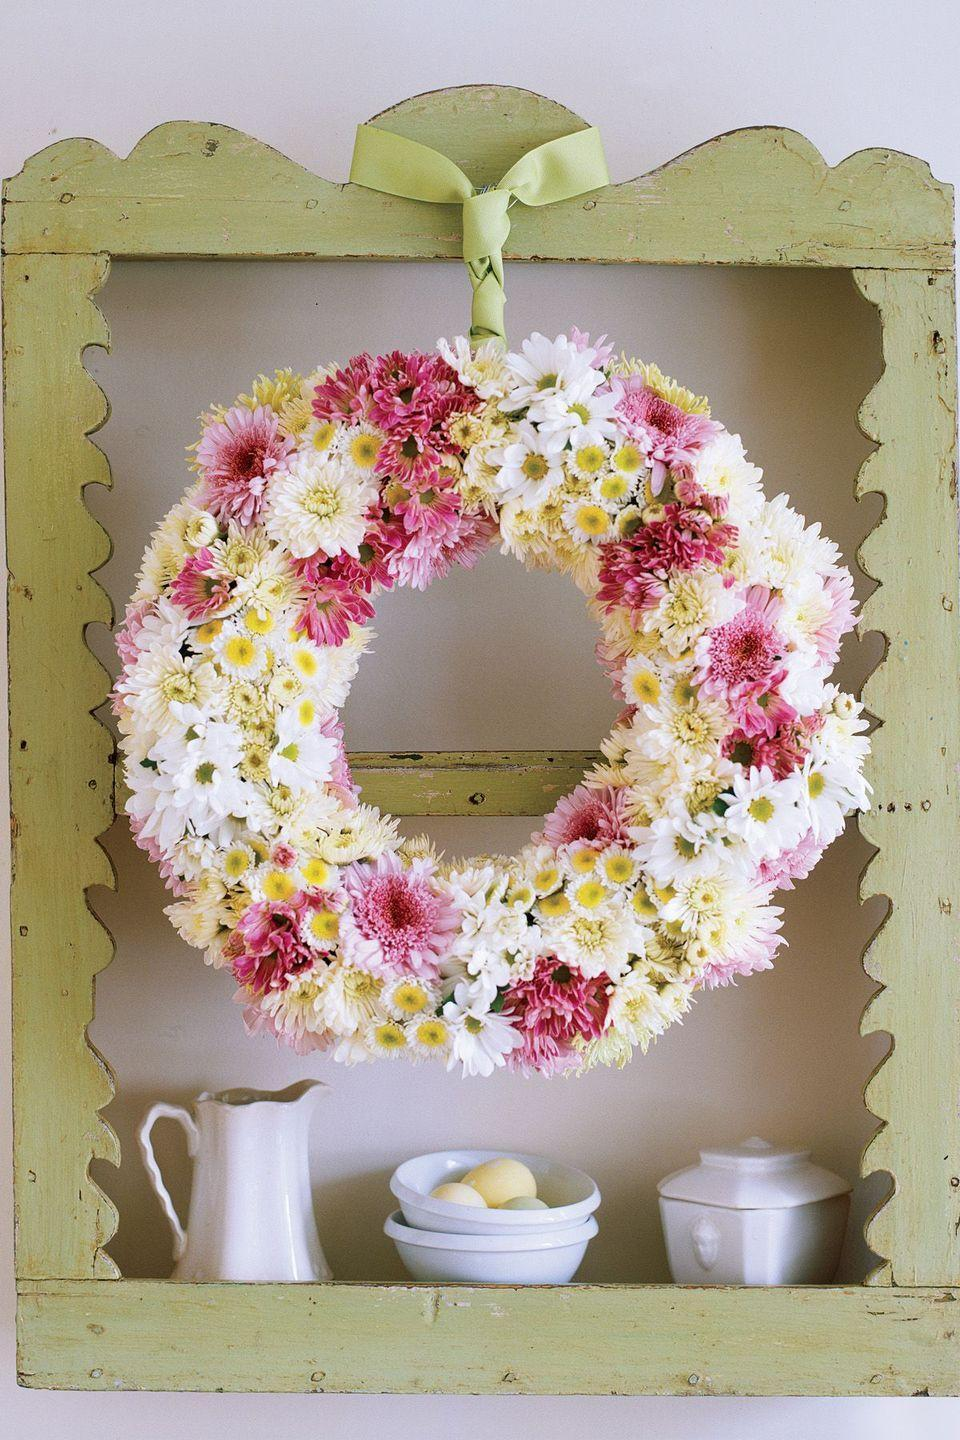 <p>This beauty is a wreath and floral arrangement all in one. To make your own garden-fresh wreath, dip a foam ring in water until it's damp but not dripping, then stand it upright in a sink for one hour to drain. Trim each flower stem to one to two inches, and insert into foam. Pack flowers tightly, overlapping them so no foam is visible. Add a wreath hook, wrap with ribbon, and finish with a dapper necktie knot. </p>